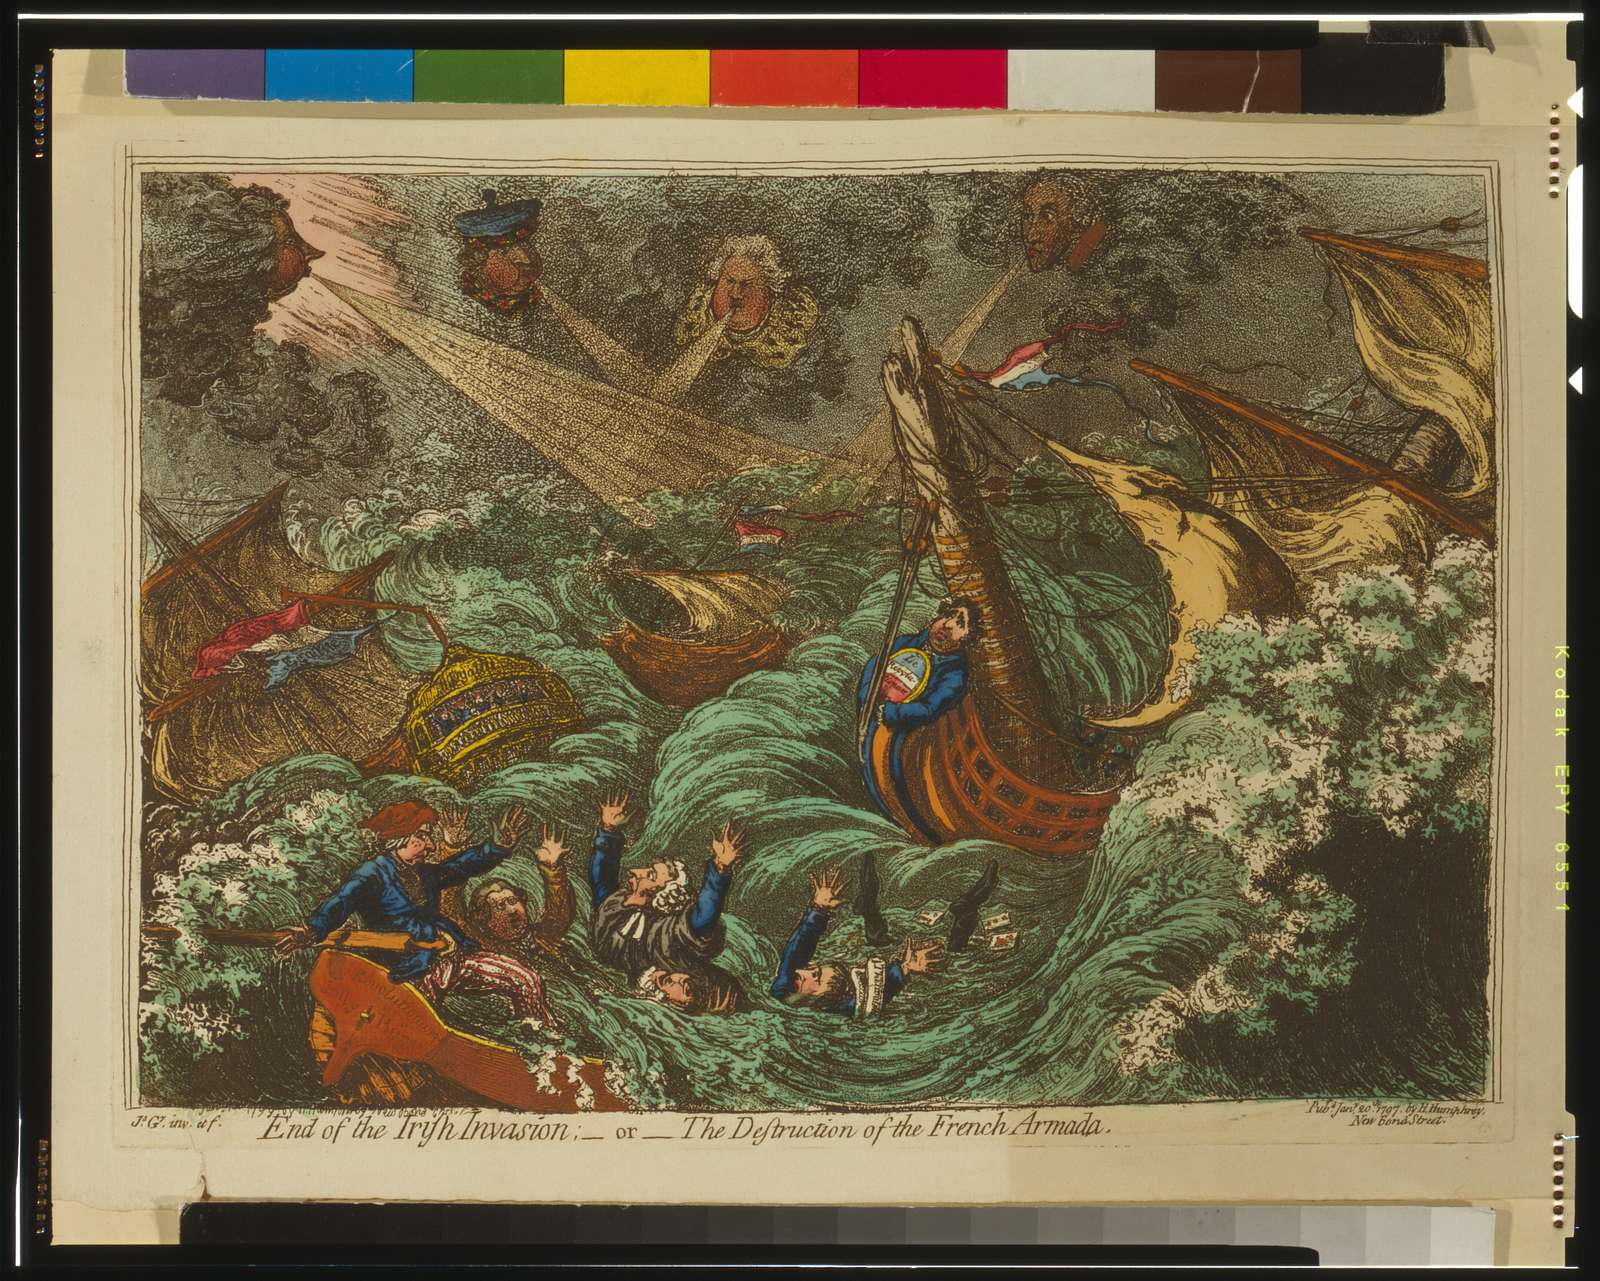 End of the Irish Invasion : - or - the Destruction of the French Armada / Js. Gillray, inv. et f.